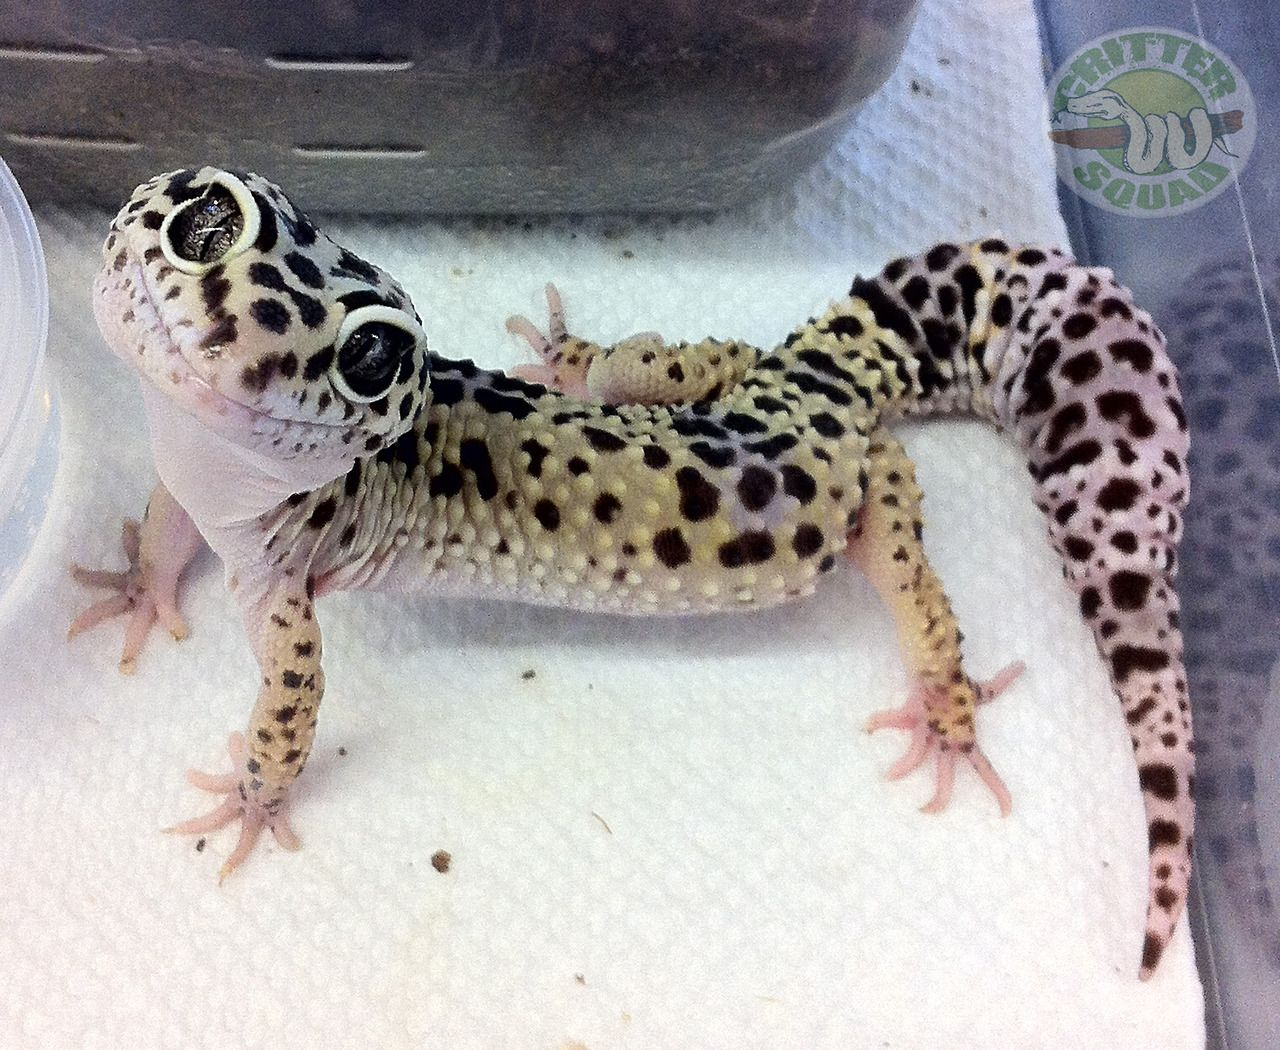 I have 4 leopard geckos. They are unique in their own ways. They are ...